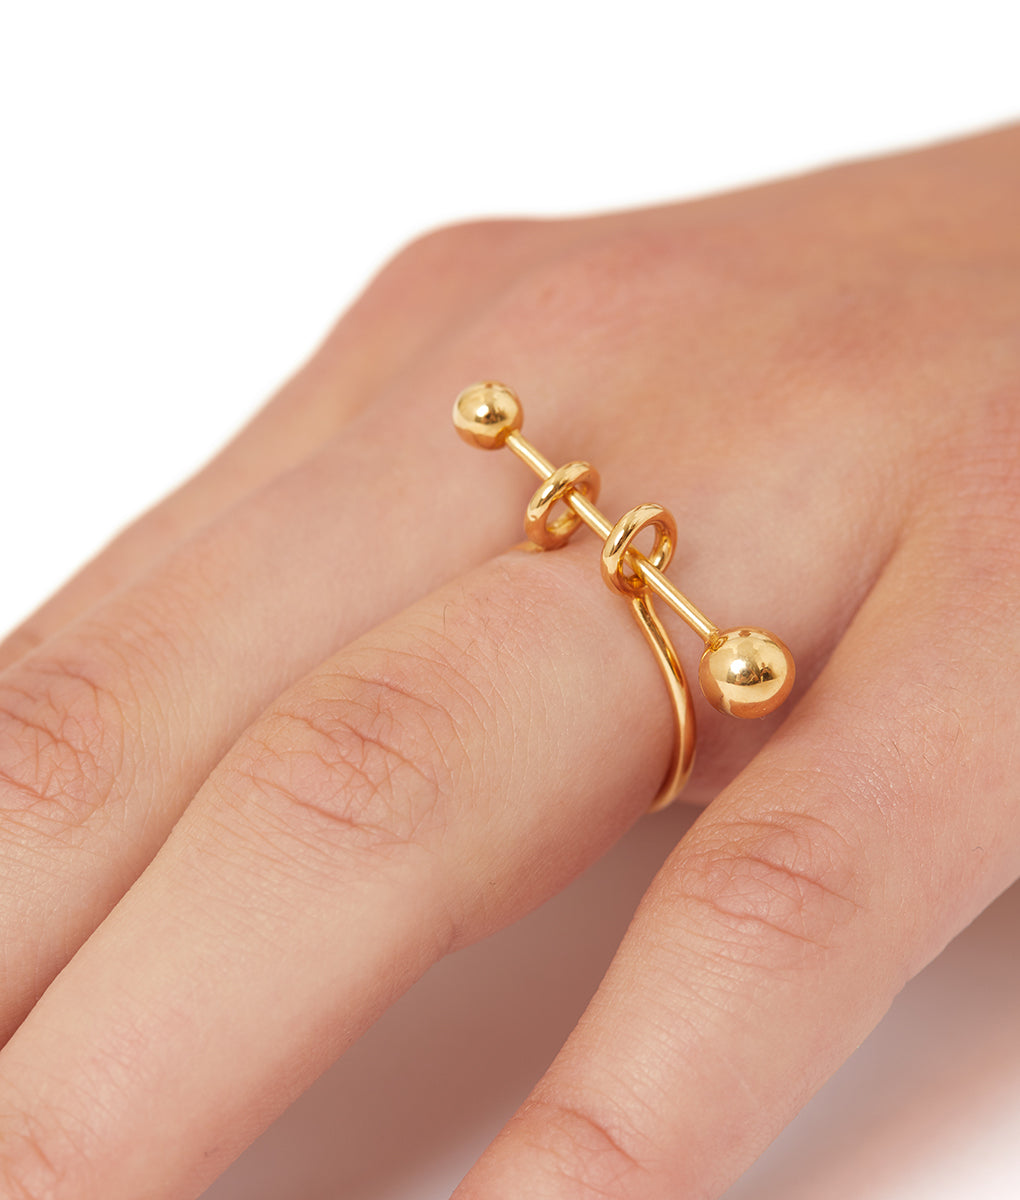 Piercing Ring Gold - 2